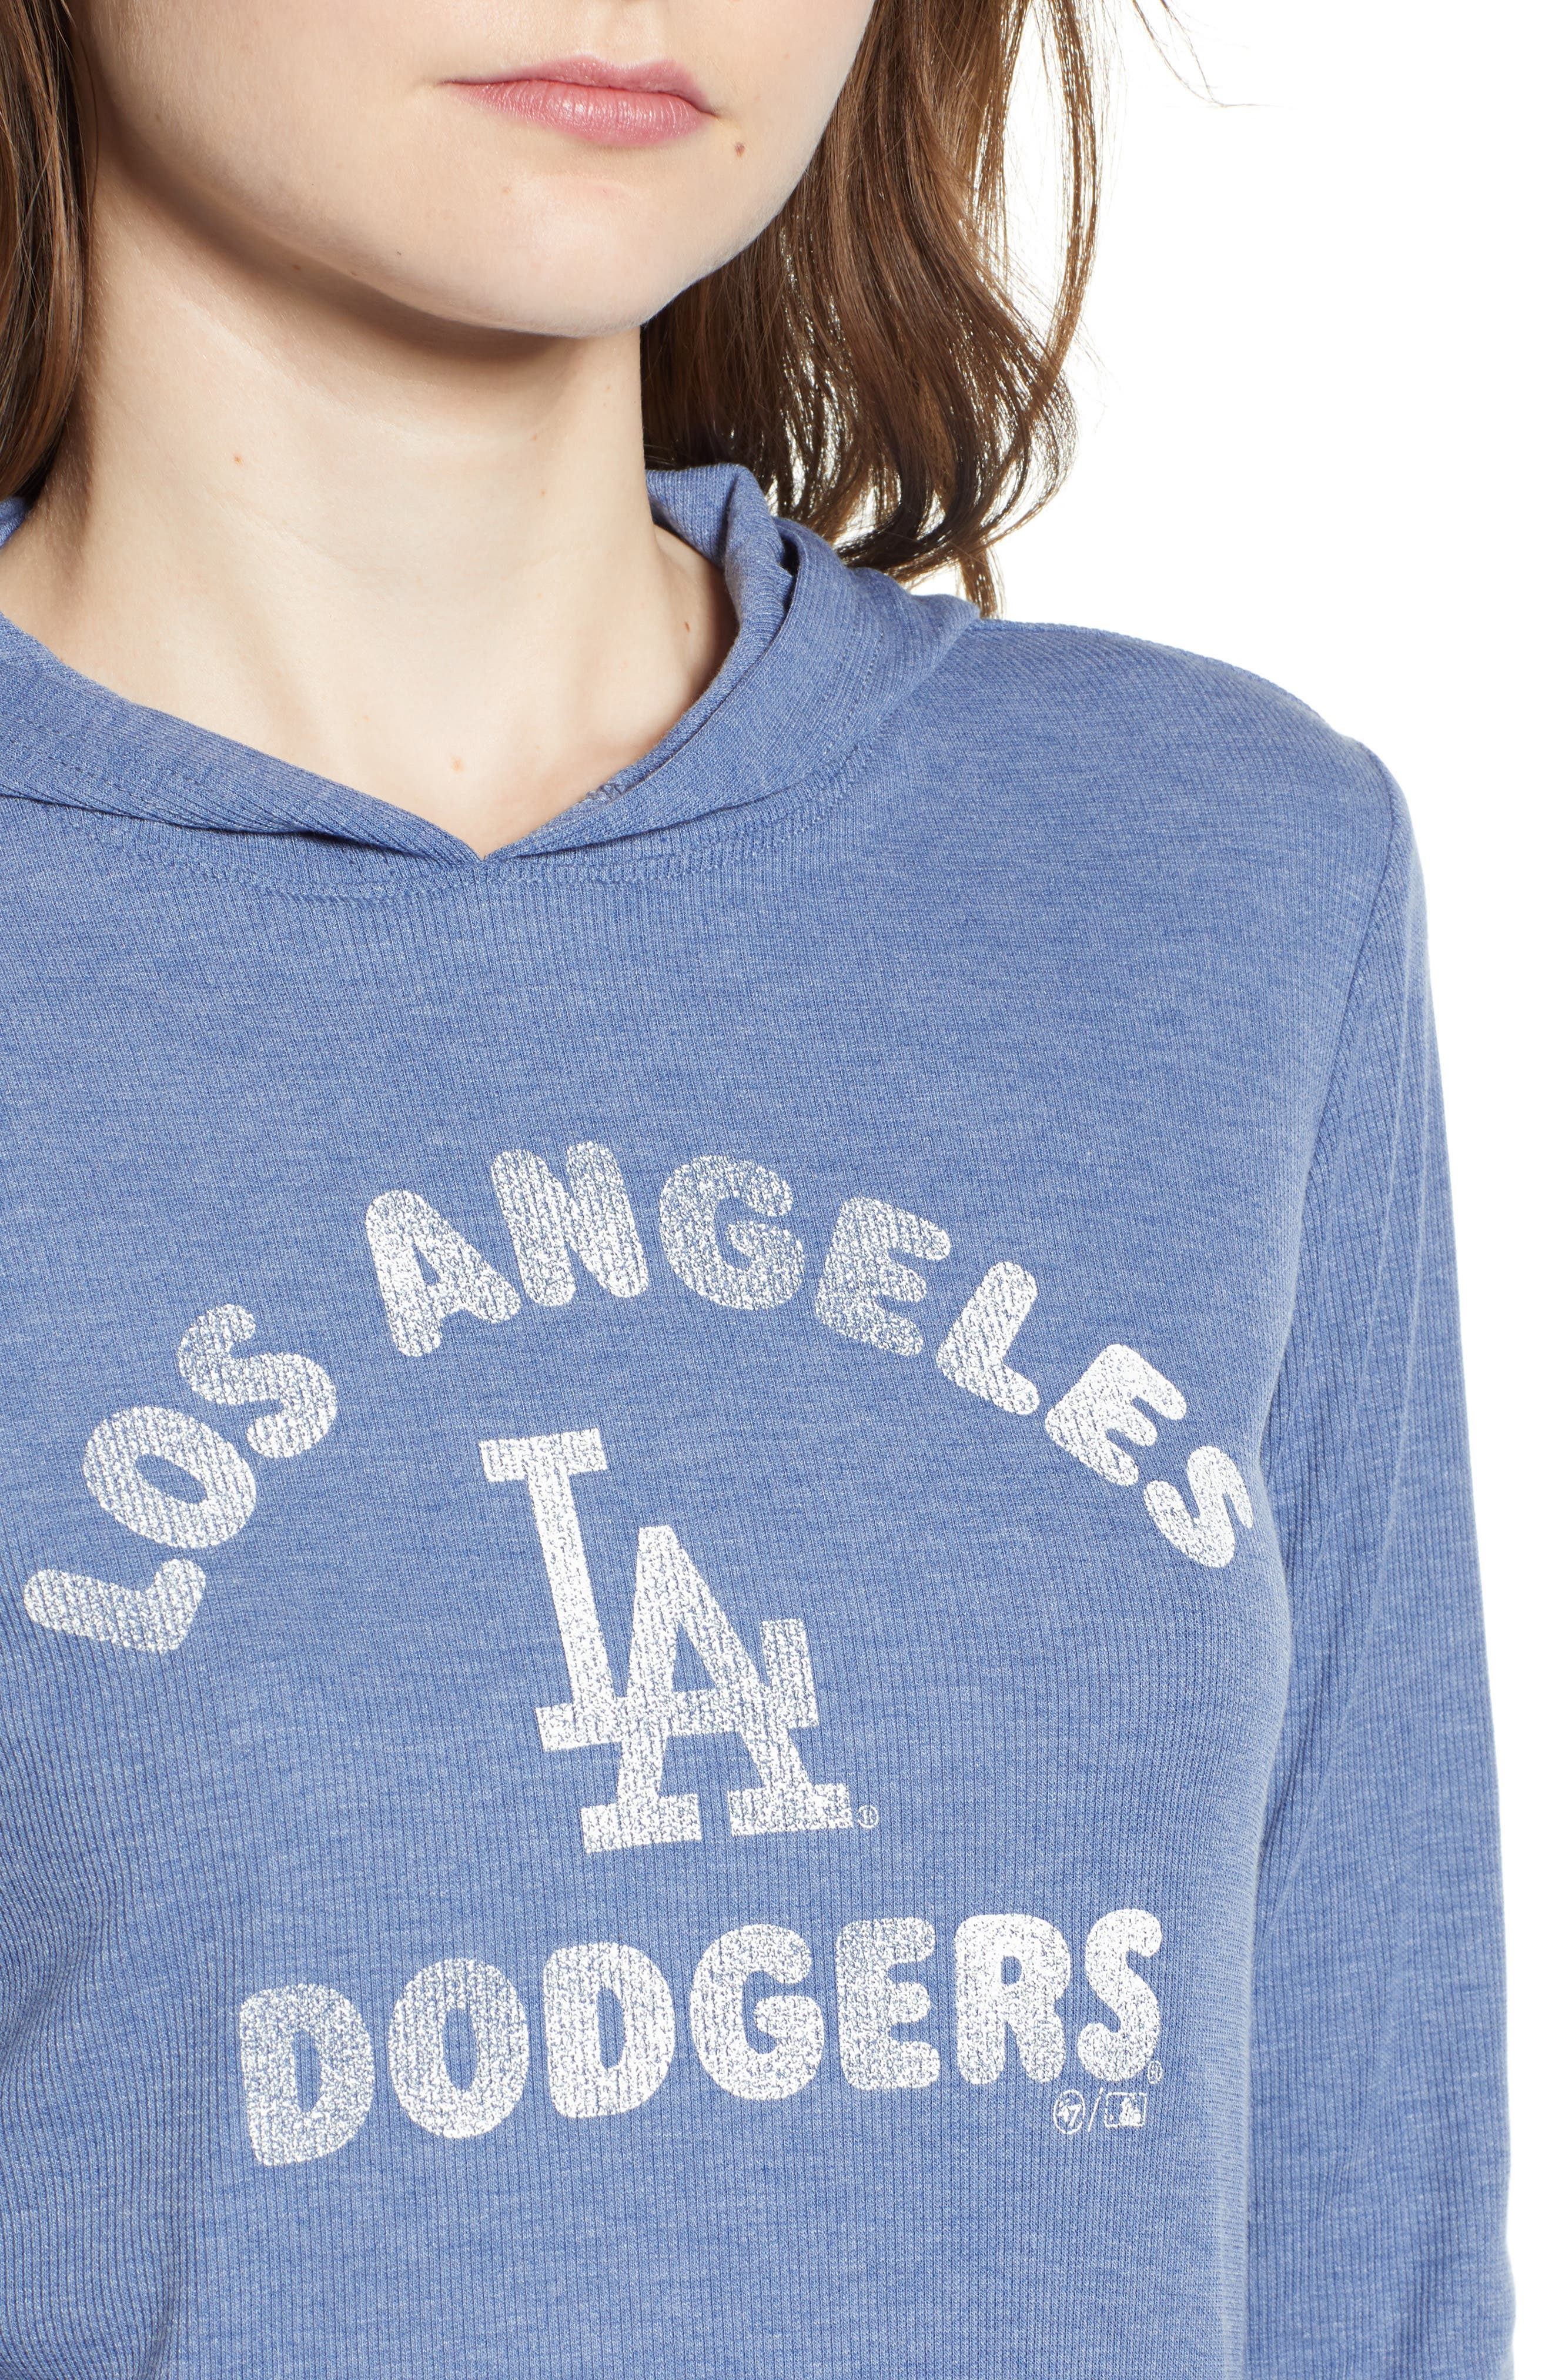 Campbell Los Angeles Dodgers Rib Knit Hooded Top,                             Alternate thumbnail 4, color,